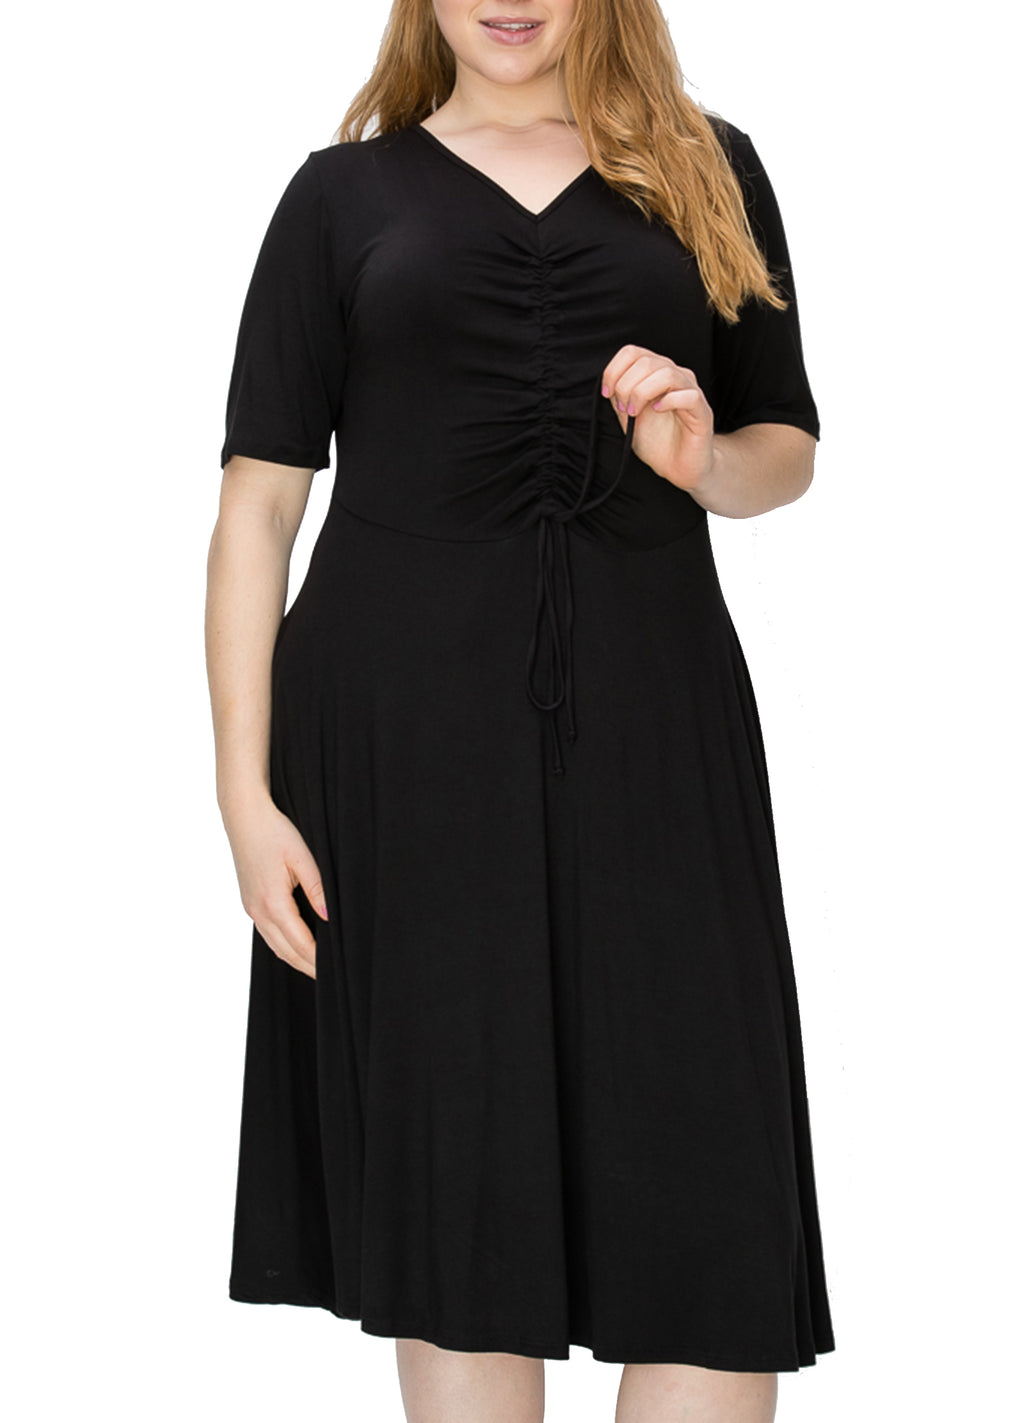 American Blue Women's Plus Size Short Sleeve V-neck Knit Ruched Draped Casual Midi Dresses 1XL 2XL 3XL